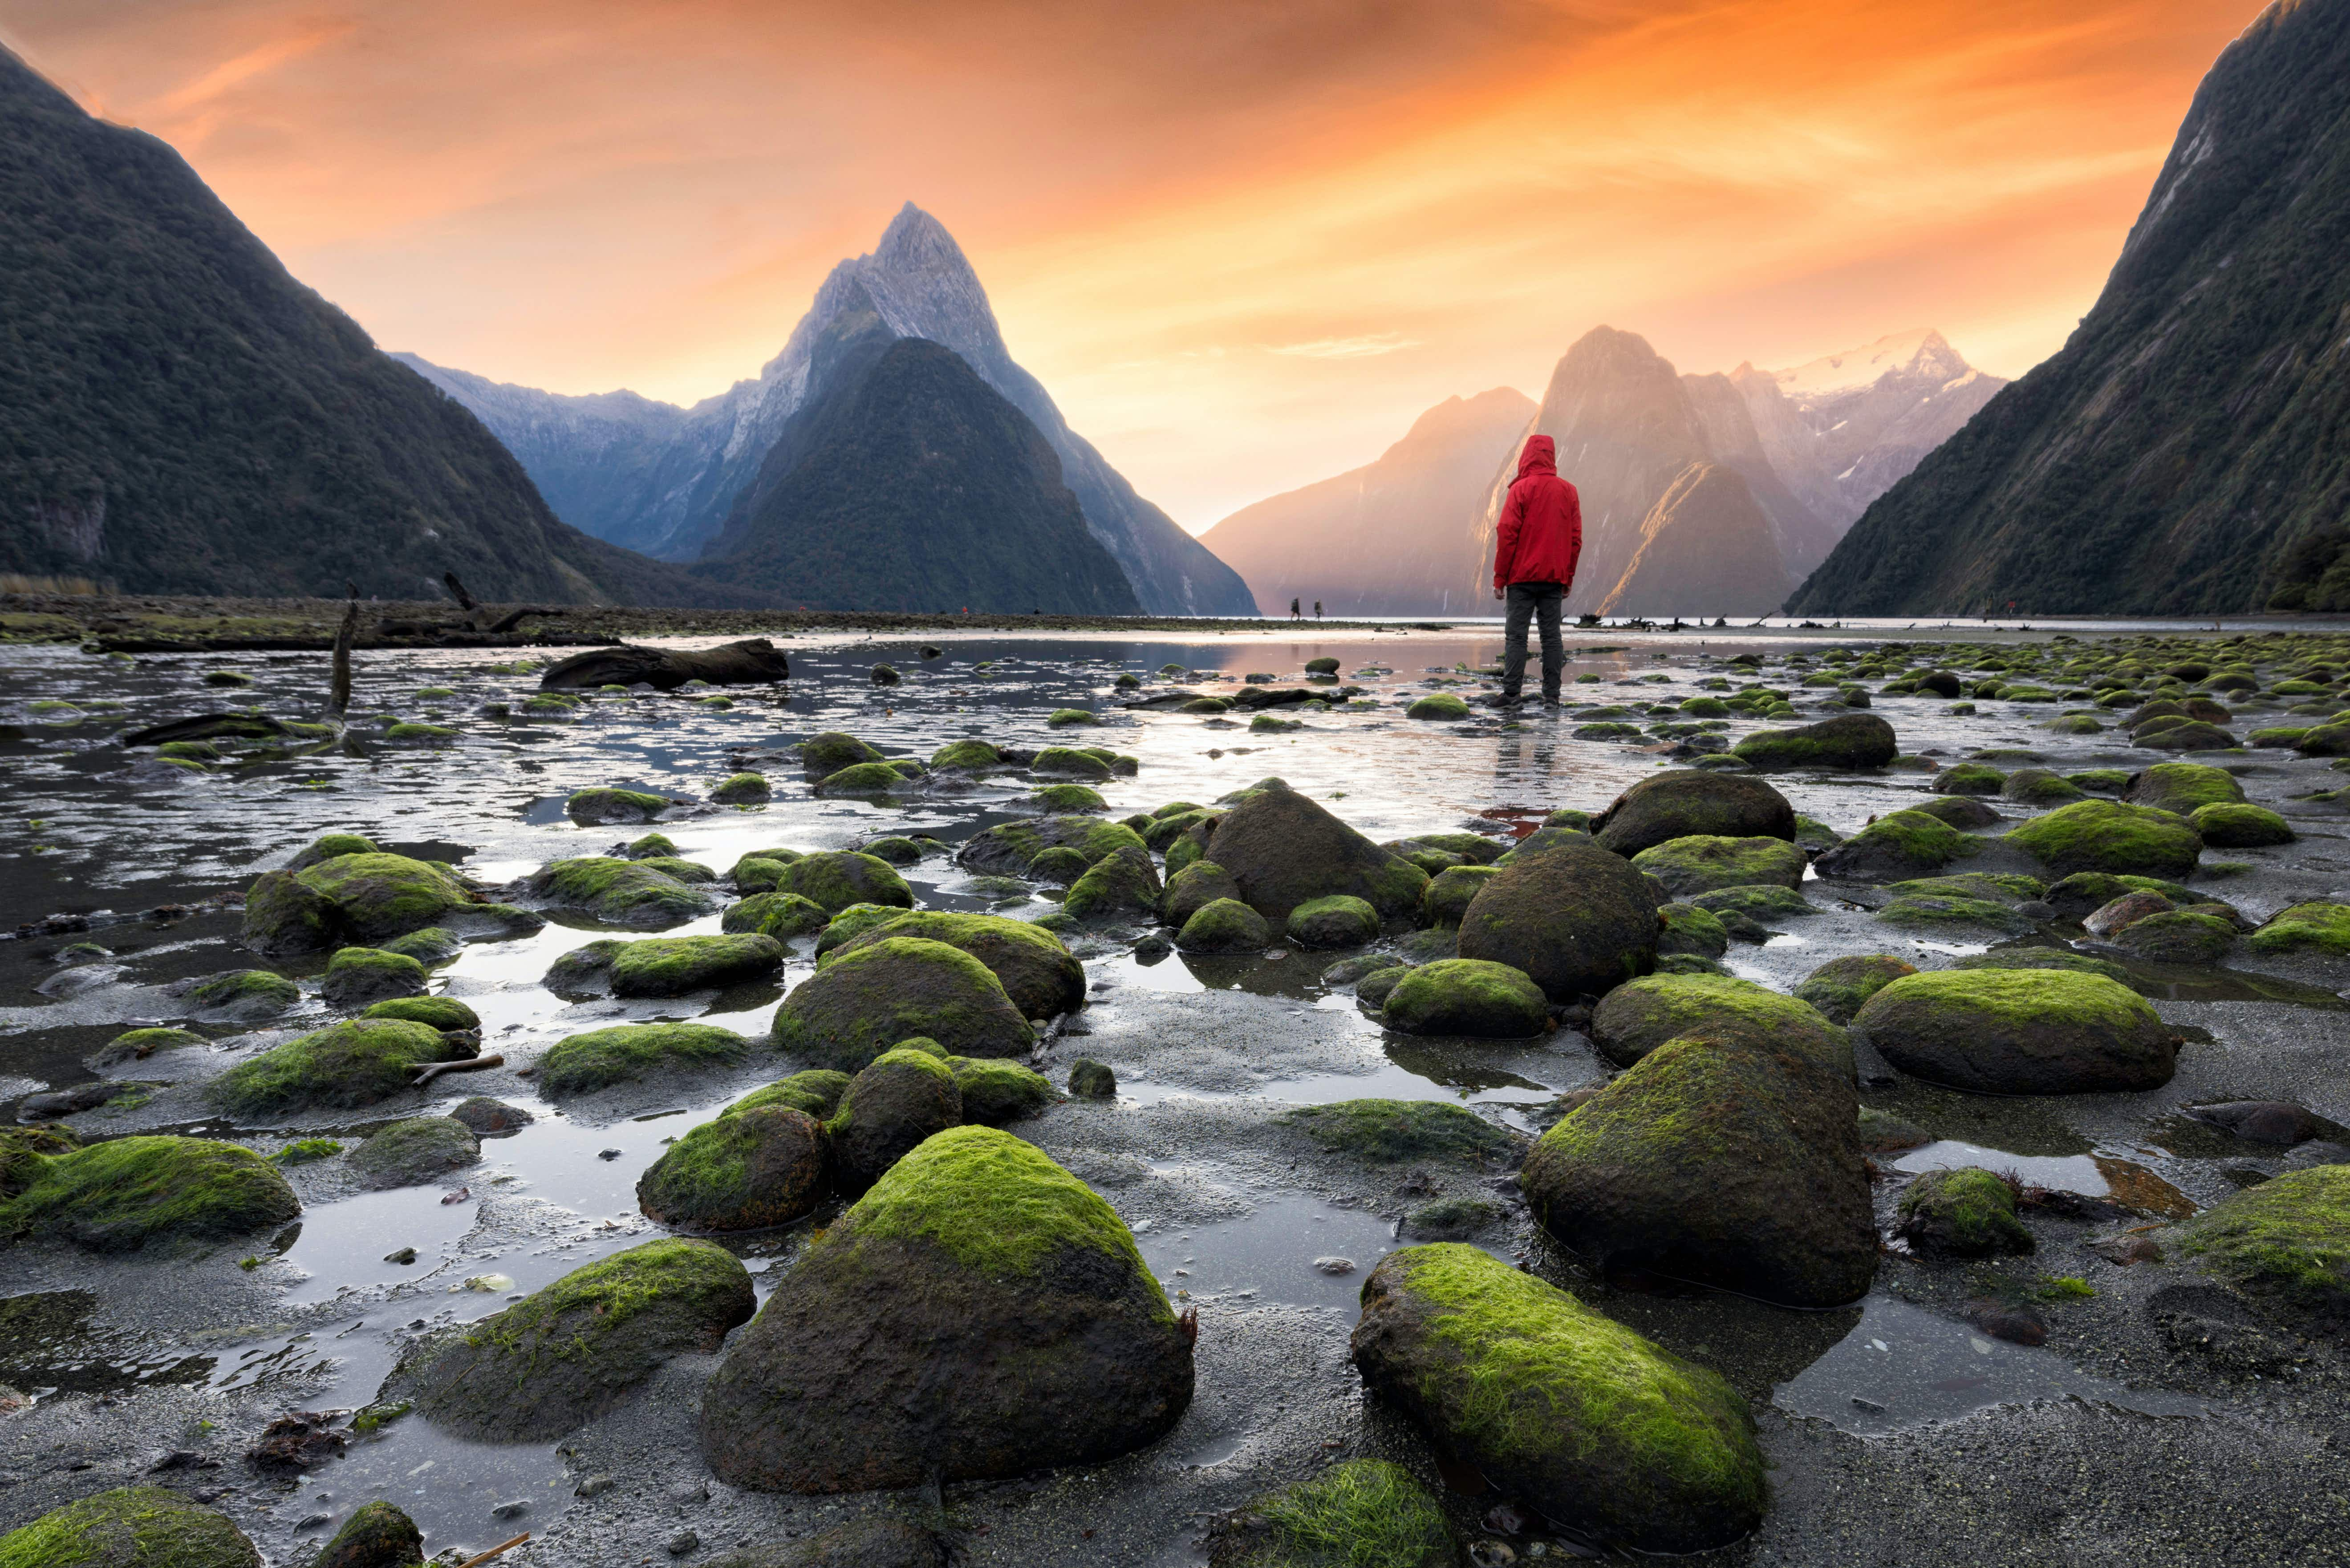 Milford Sound/Piopiotahi is a fiord in the south west of New Zealand's South Island